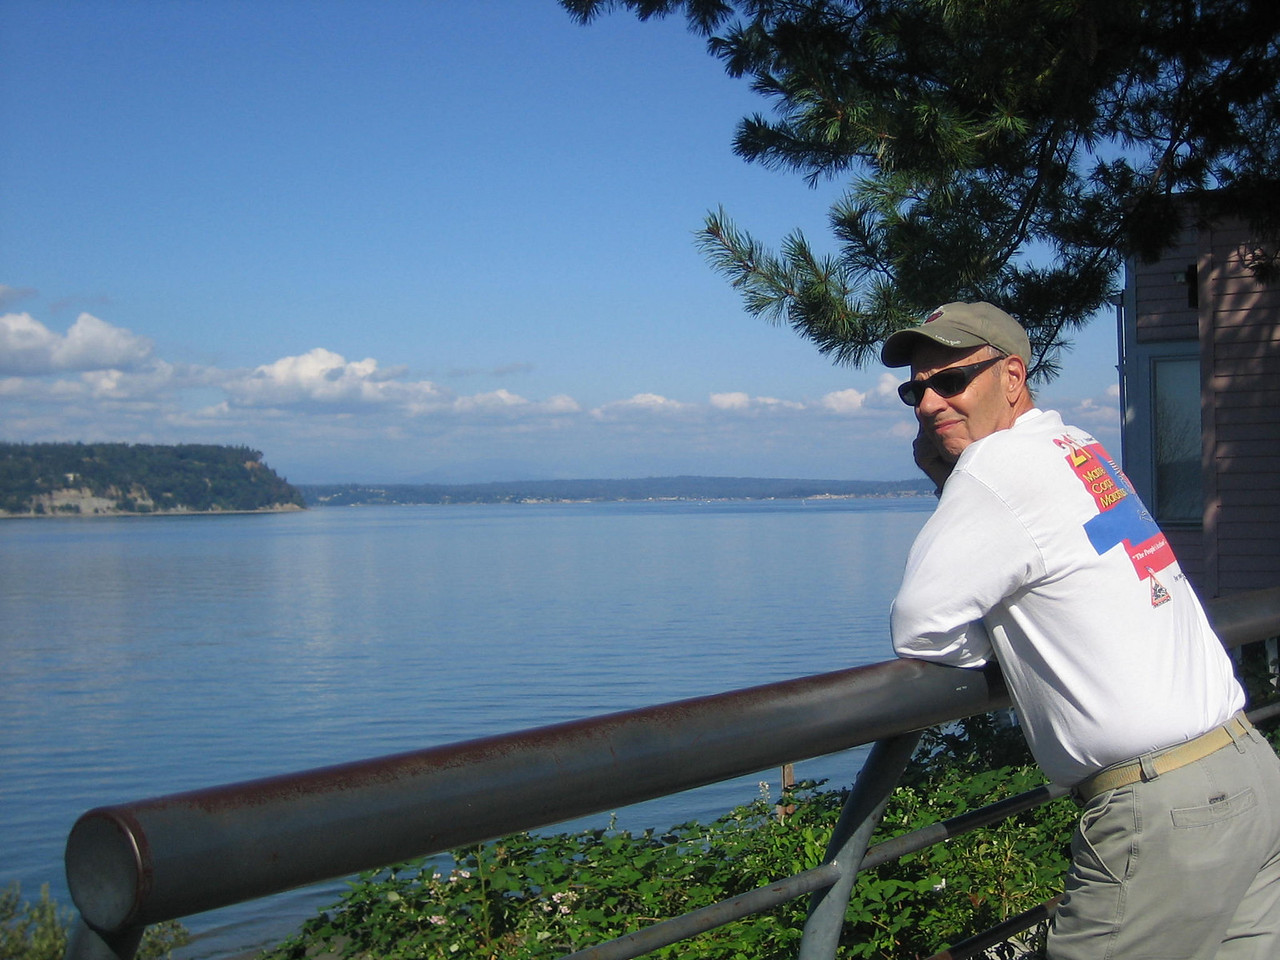 Bob enjoying the view on Whidbey Island